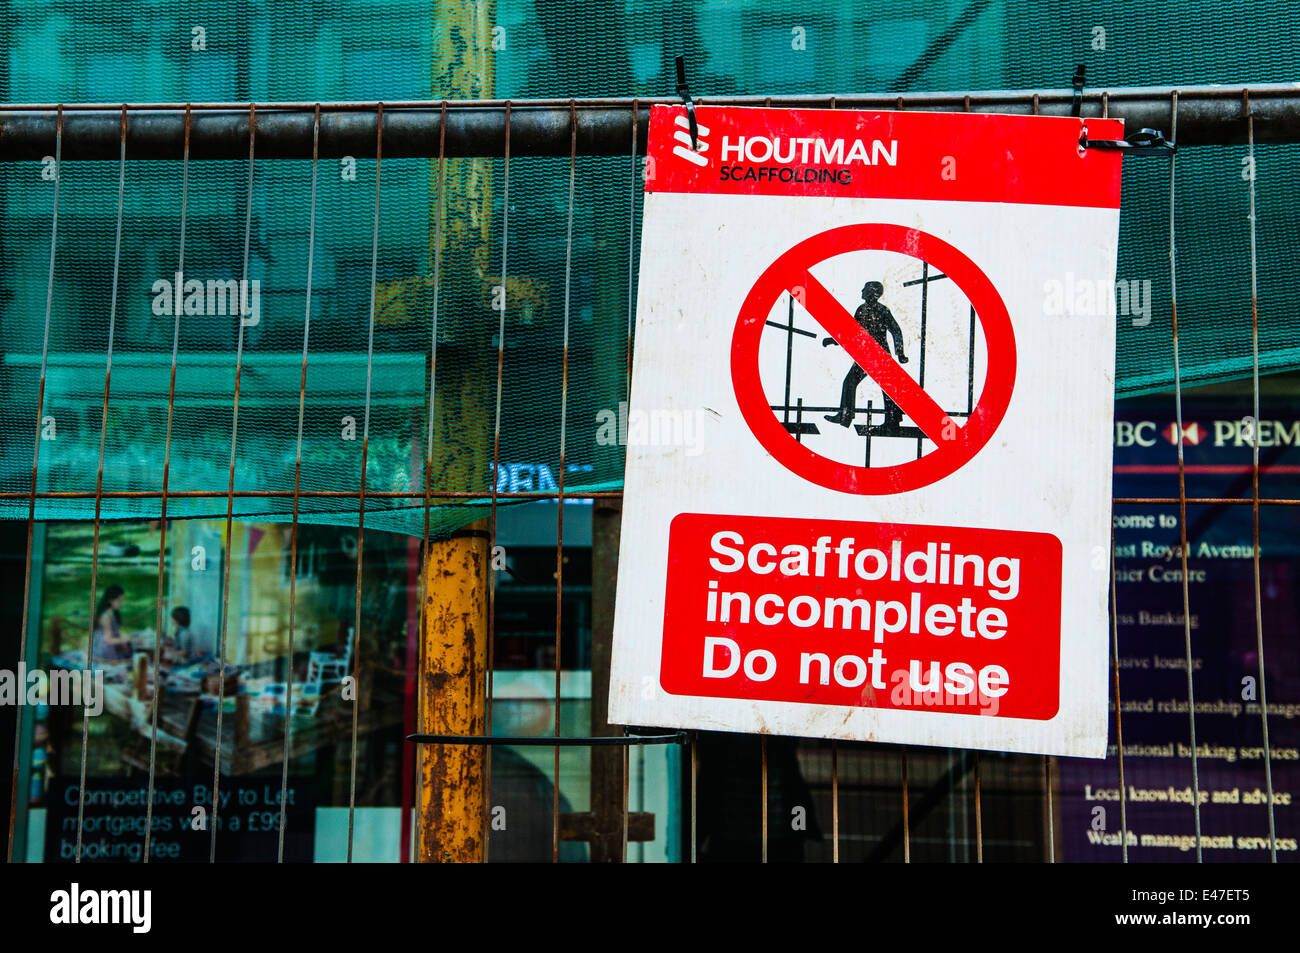 Warning sign at scaffolding warning that it is incomplete and do not use. - Stock Image